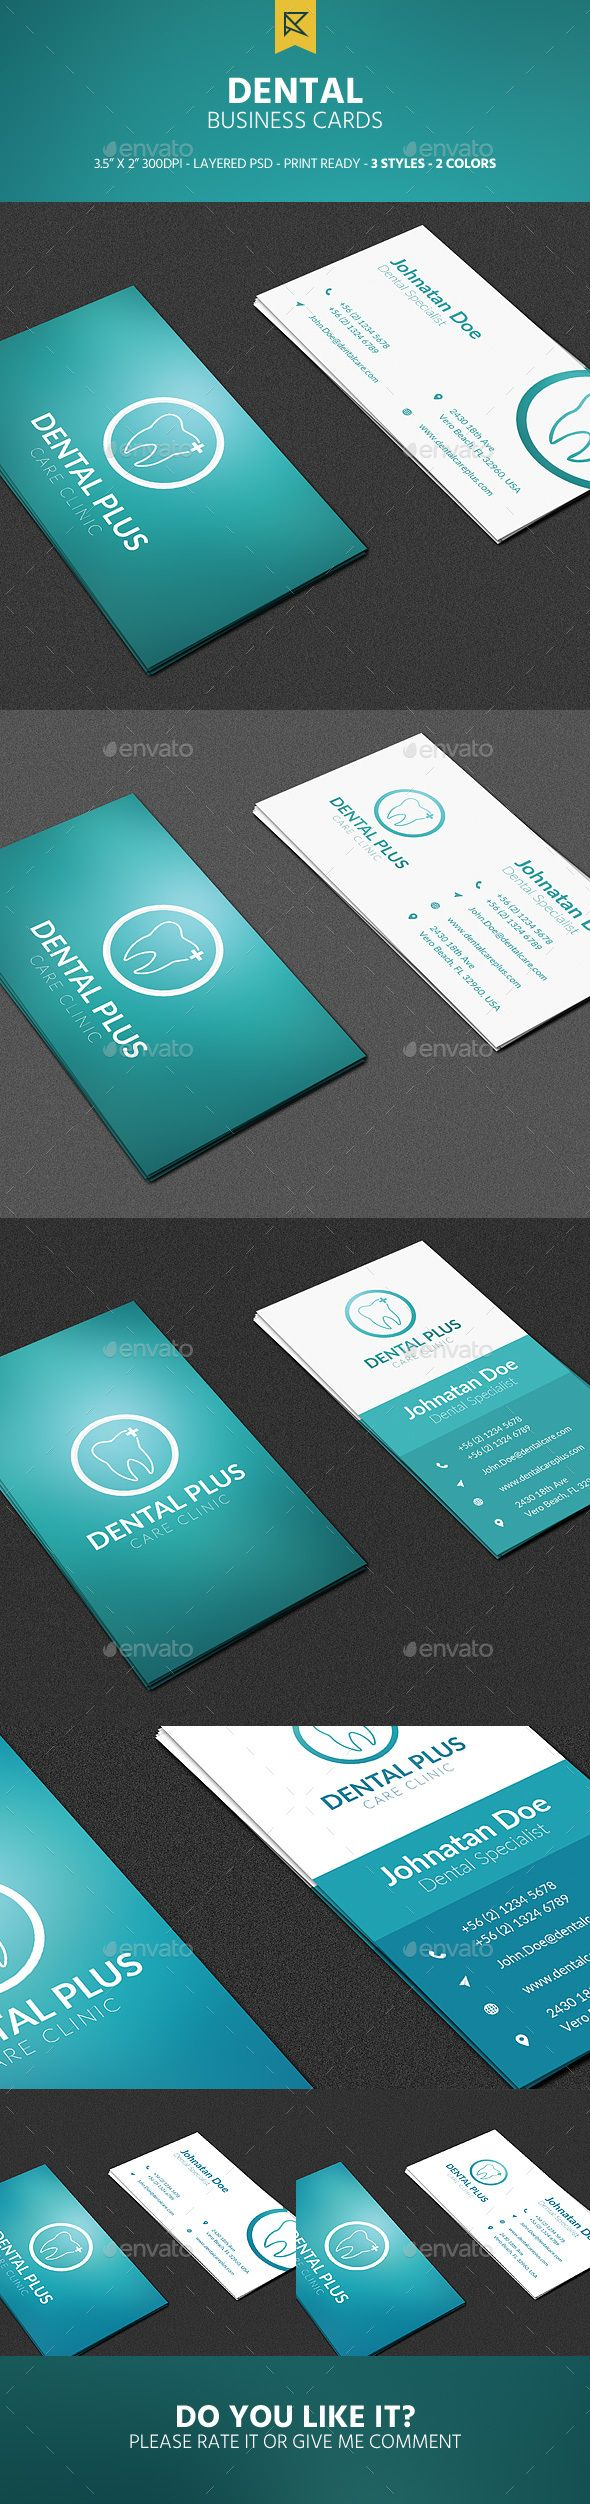 3 Dental Business Cards - Industry Specific Business Cards